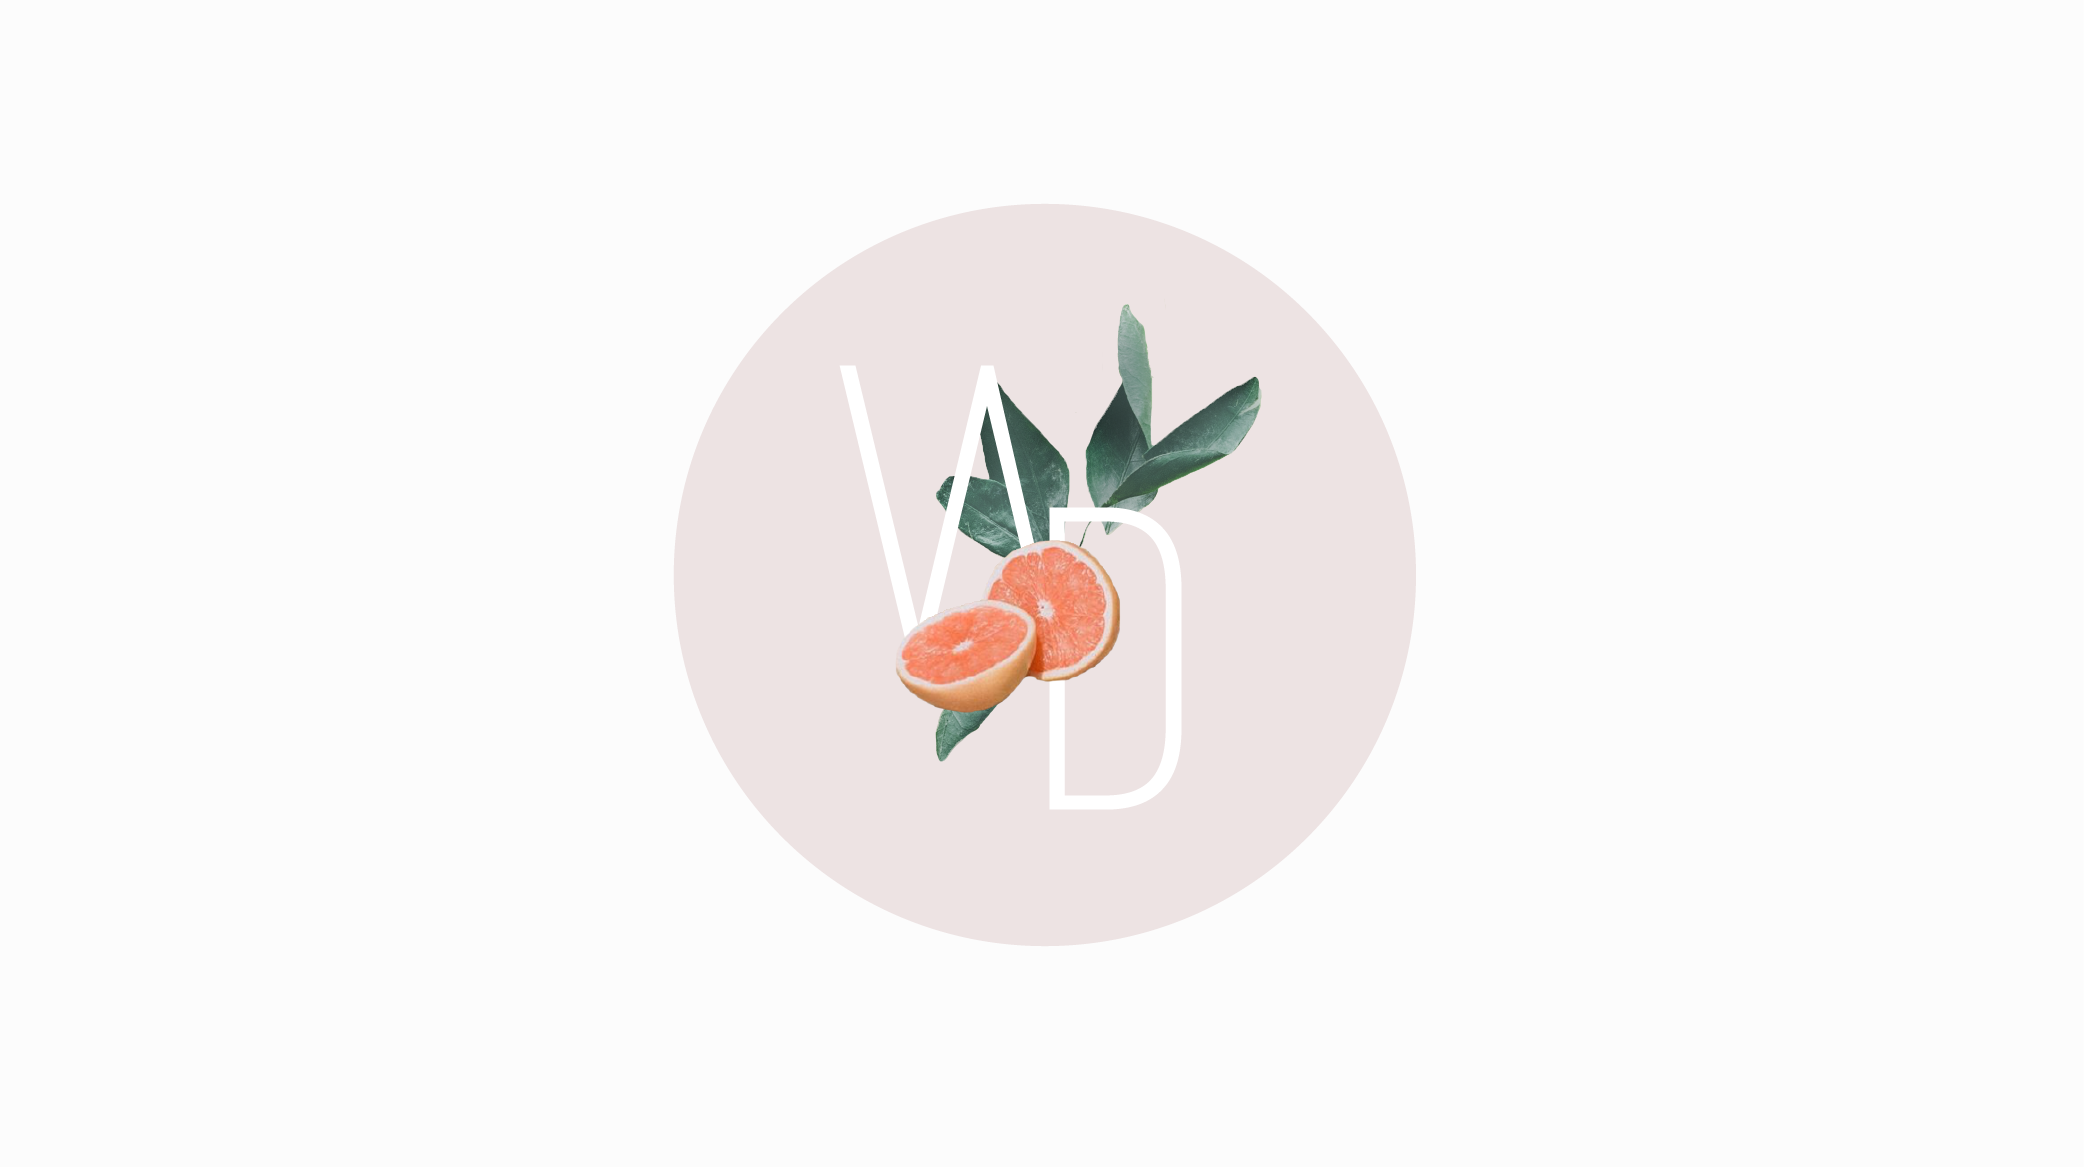 Well Daily logo with orange leaves in a soft muted pink circle